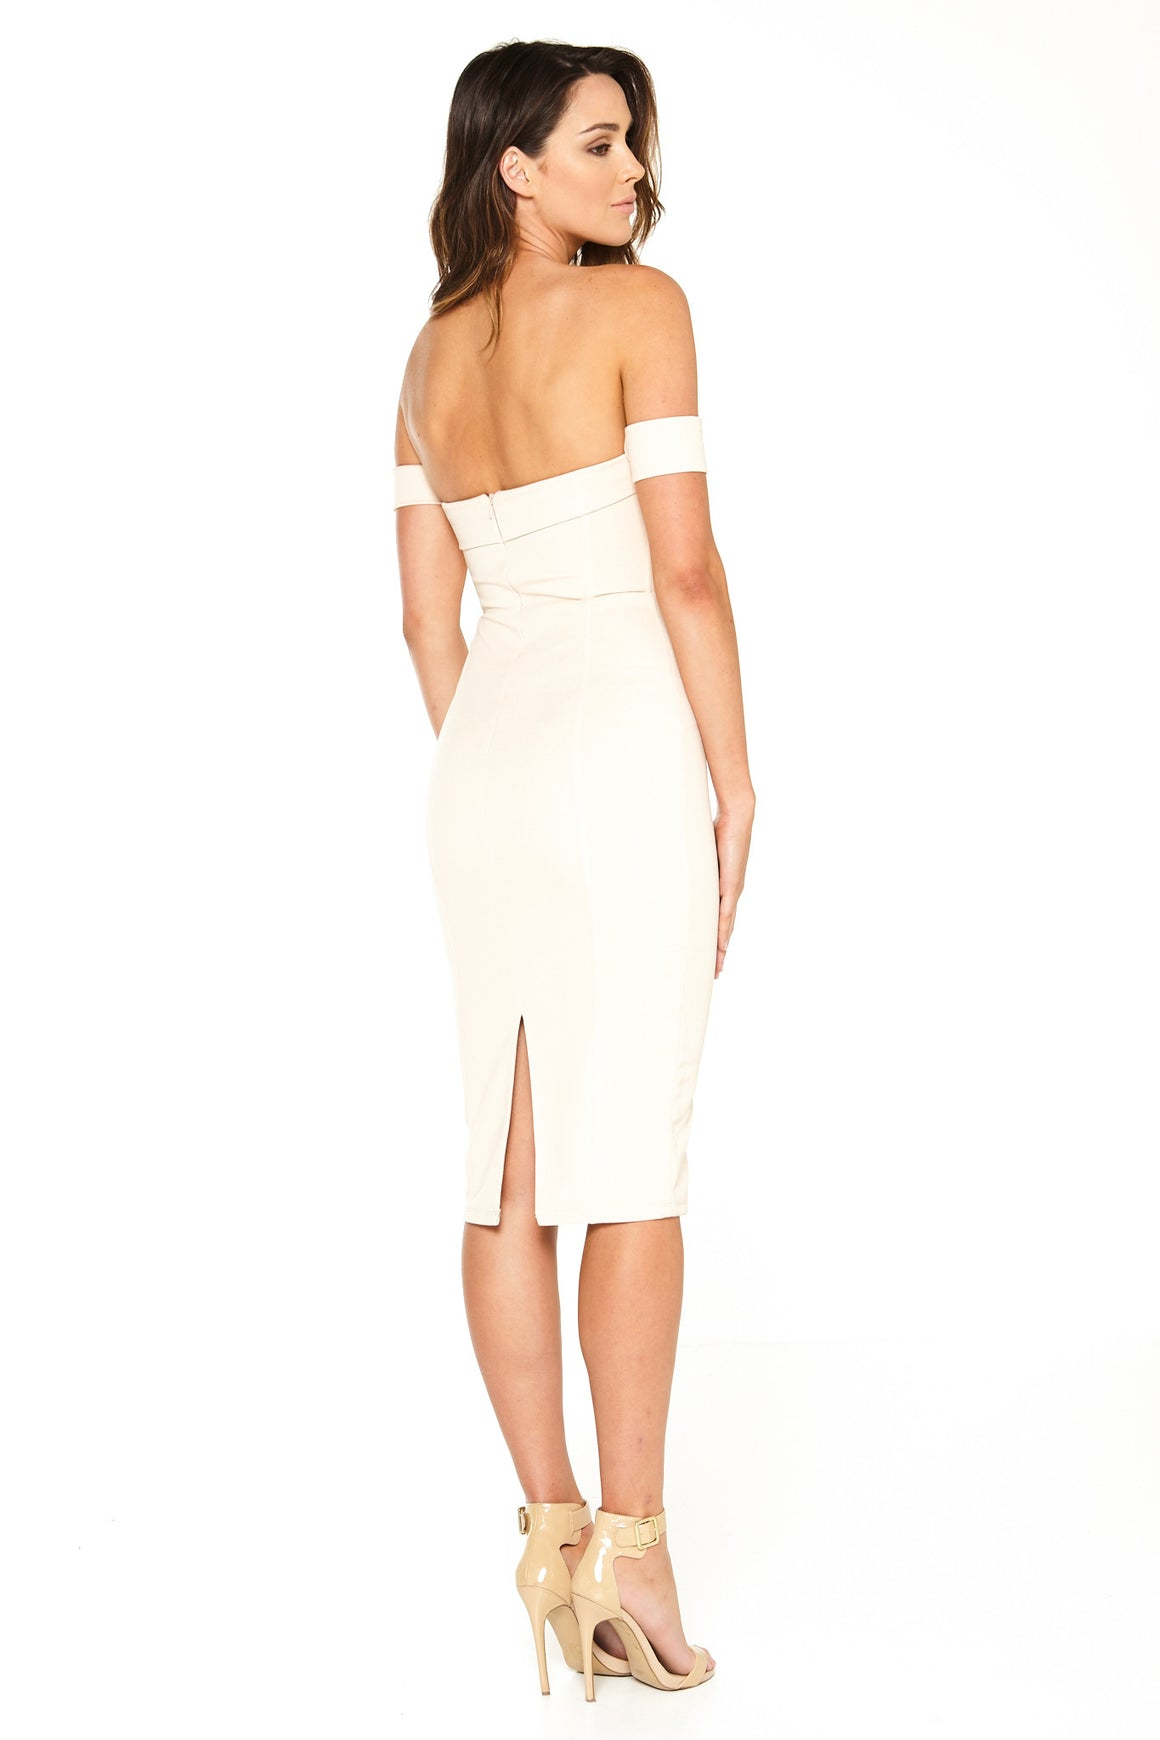 Cynthia Off-Shoulder Dress - Nude [SAMPLE SALE]